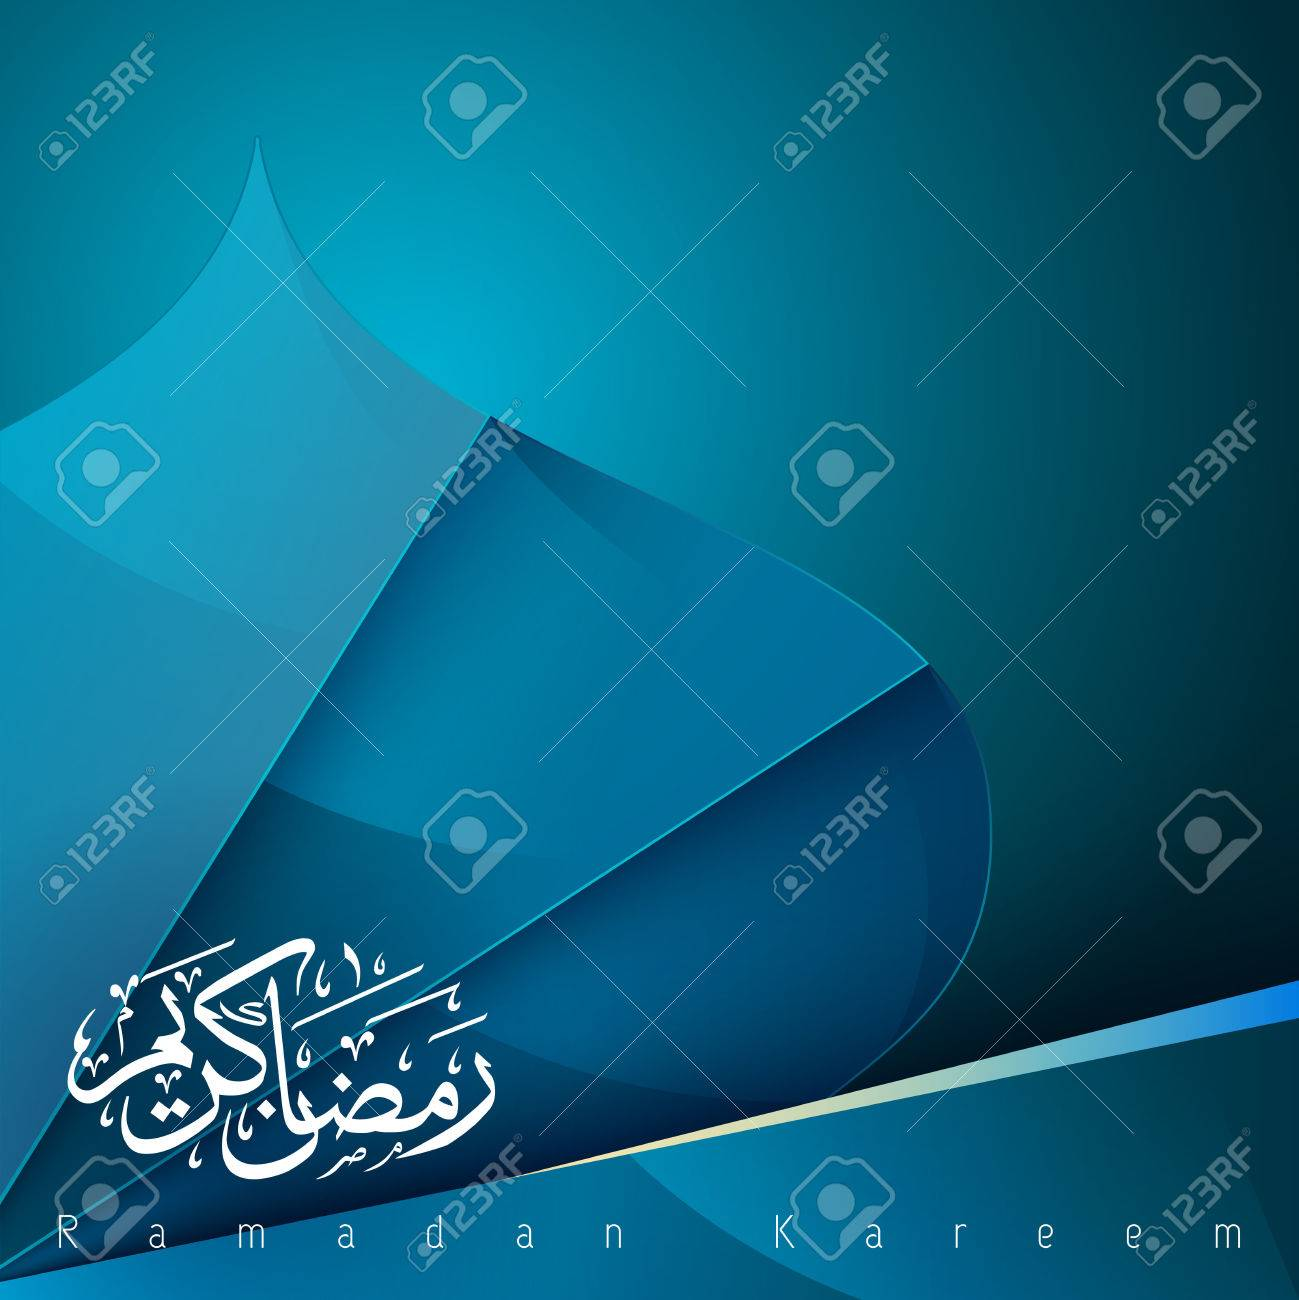 Ramadan greeting template with mosque dome and arabic calligraphy ramadan greeting template with mosque dome and arabic calligraphy text ramadan kareem stok fotoraf 56668379 m4hsunfo